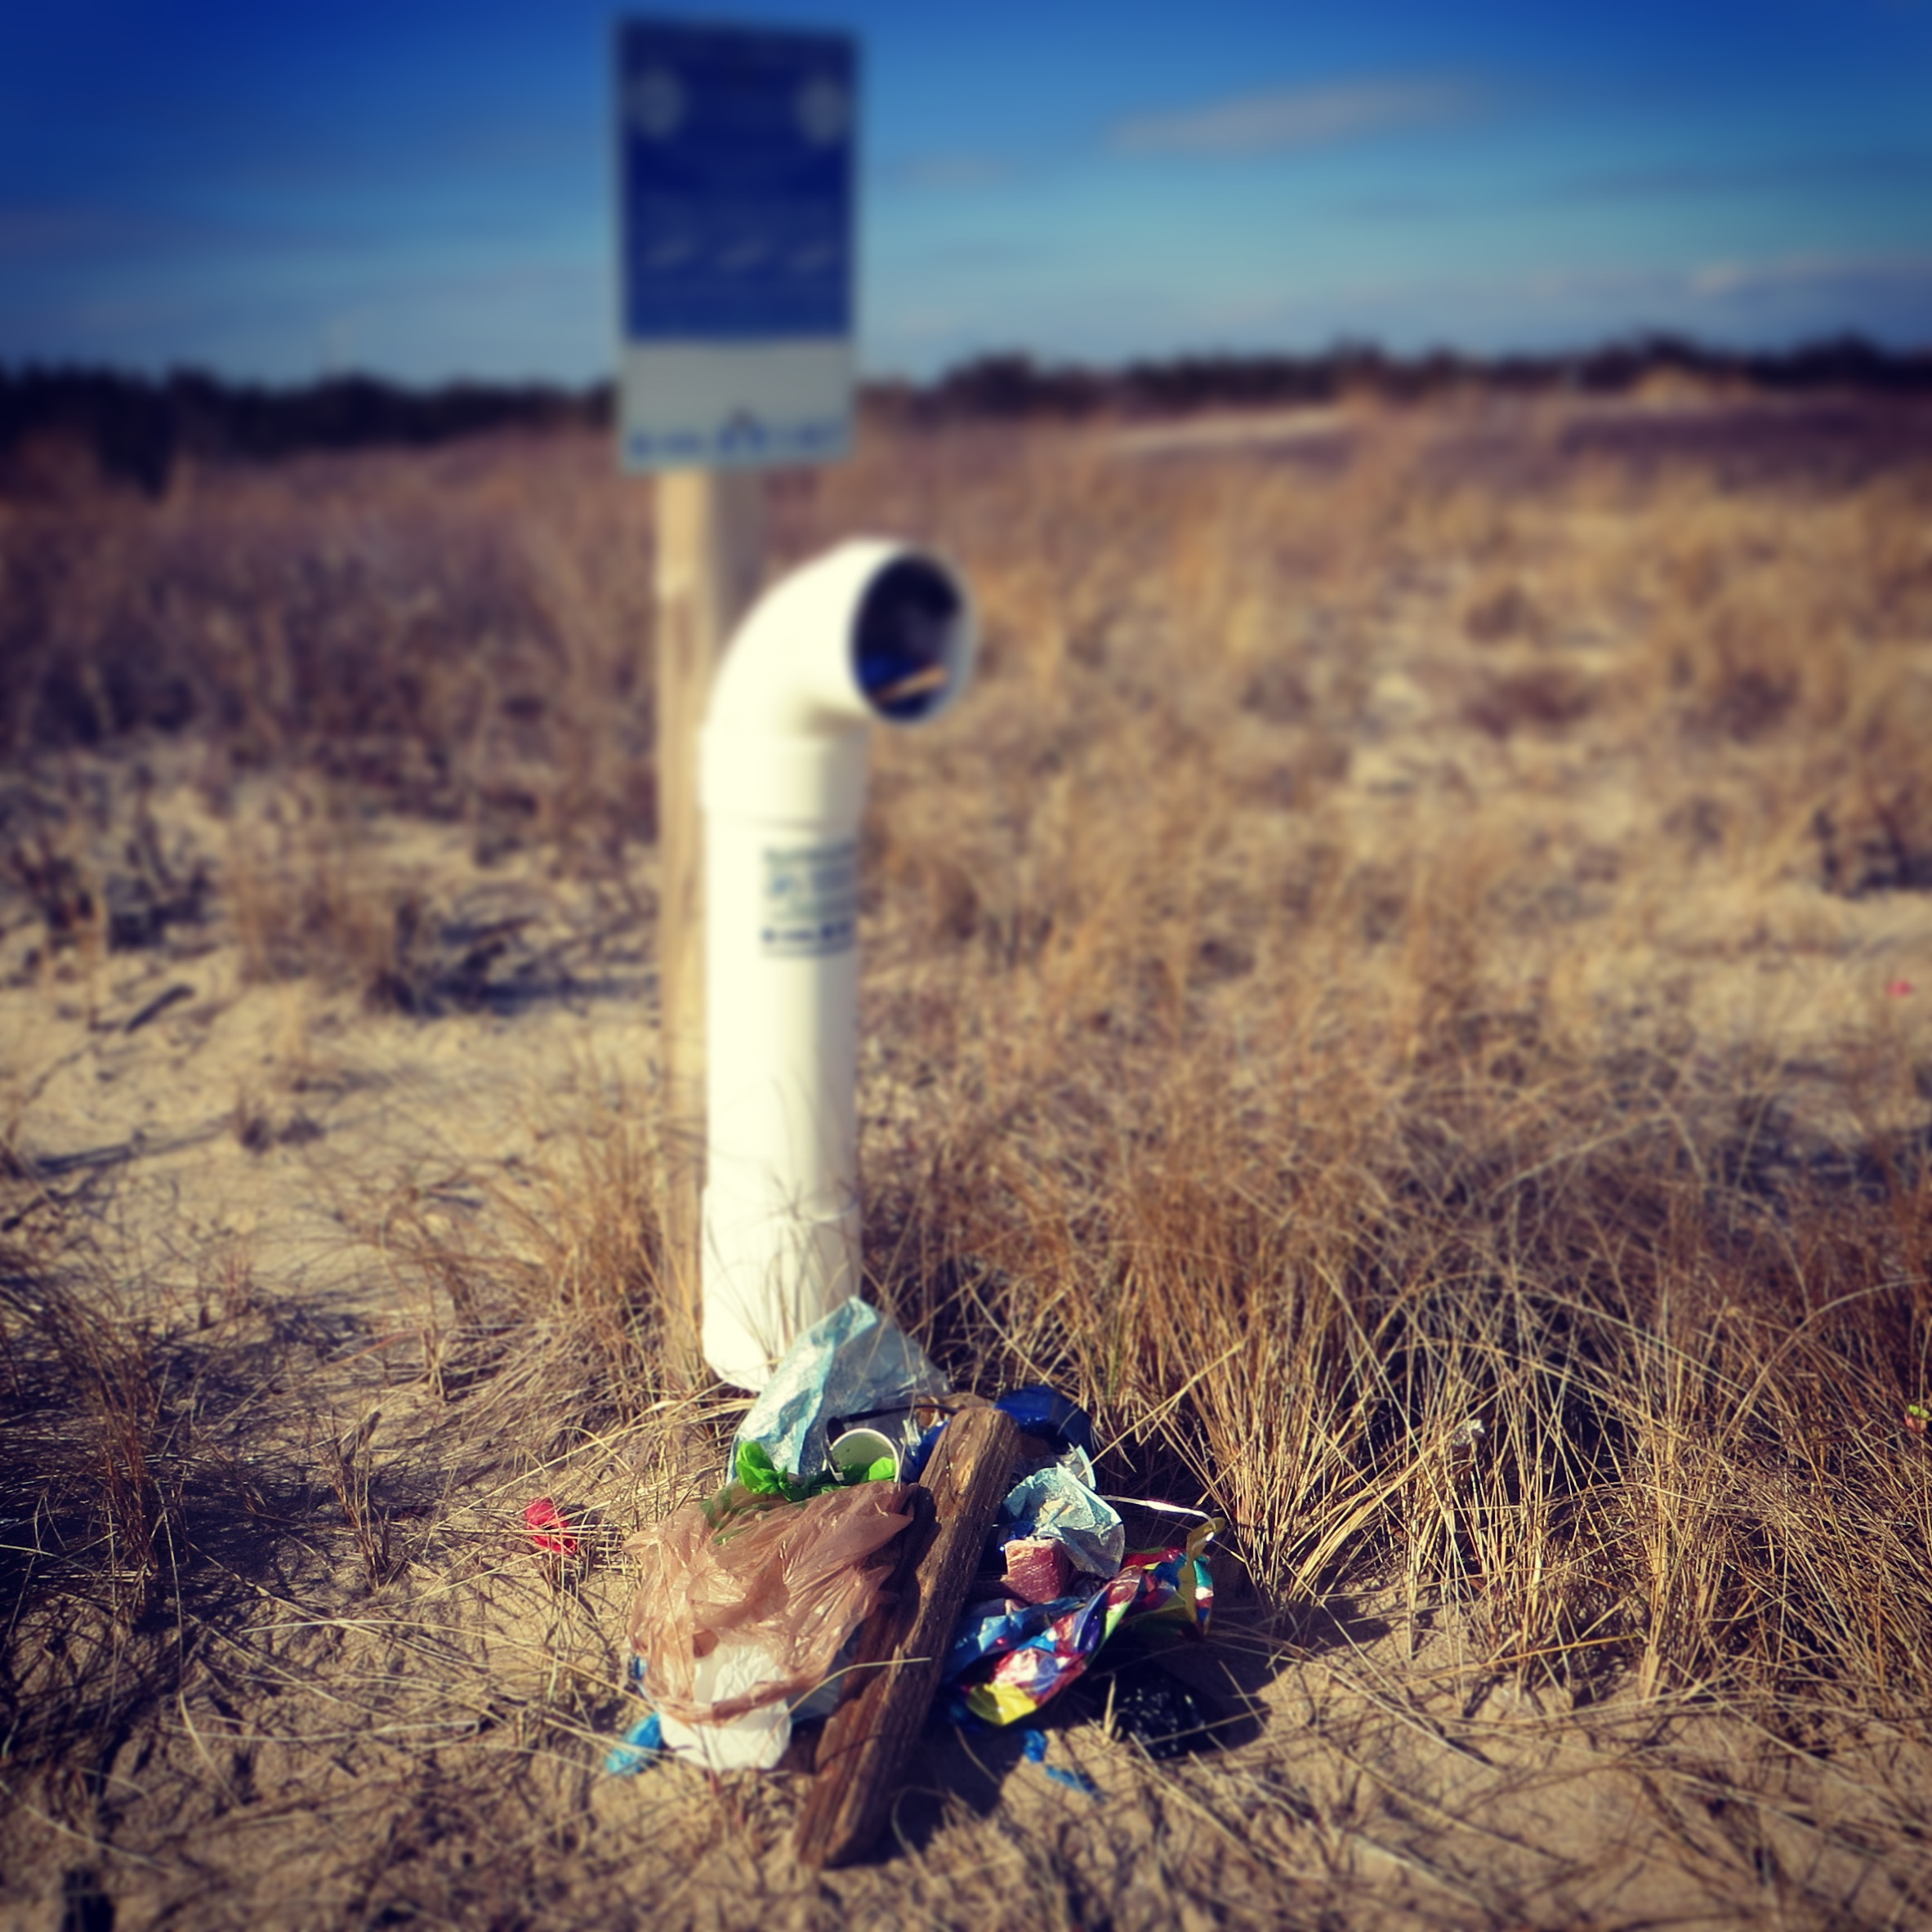 Please do not leave trash near a fishing line recycle bin! - Keep our beaches clean for all species to enjoy!